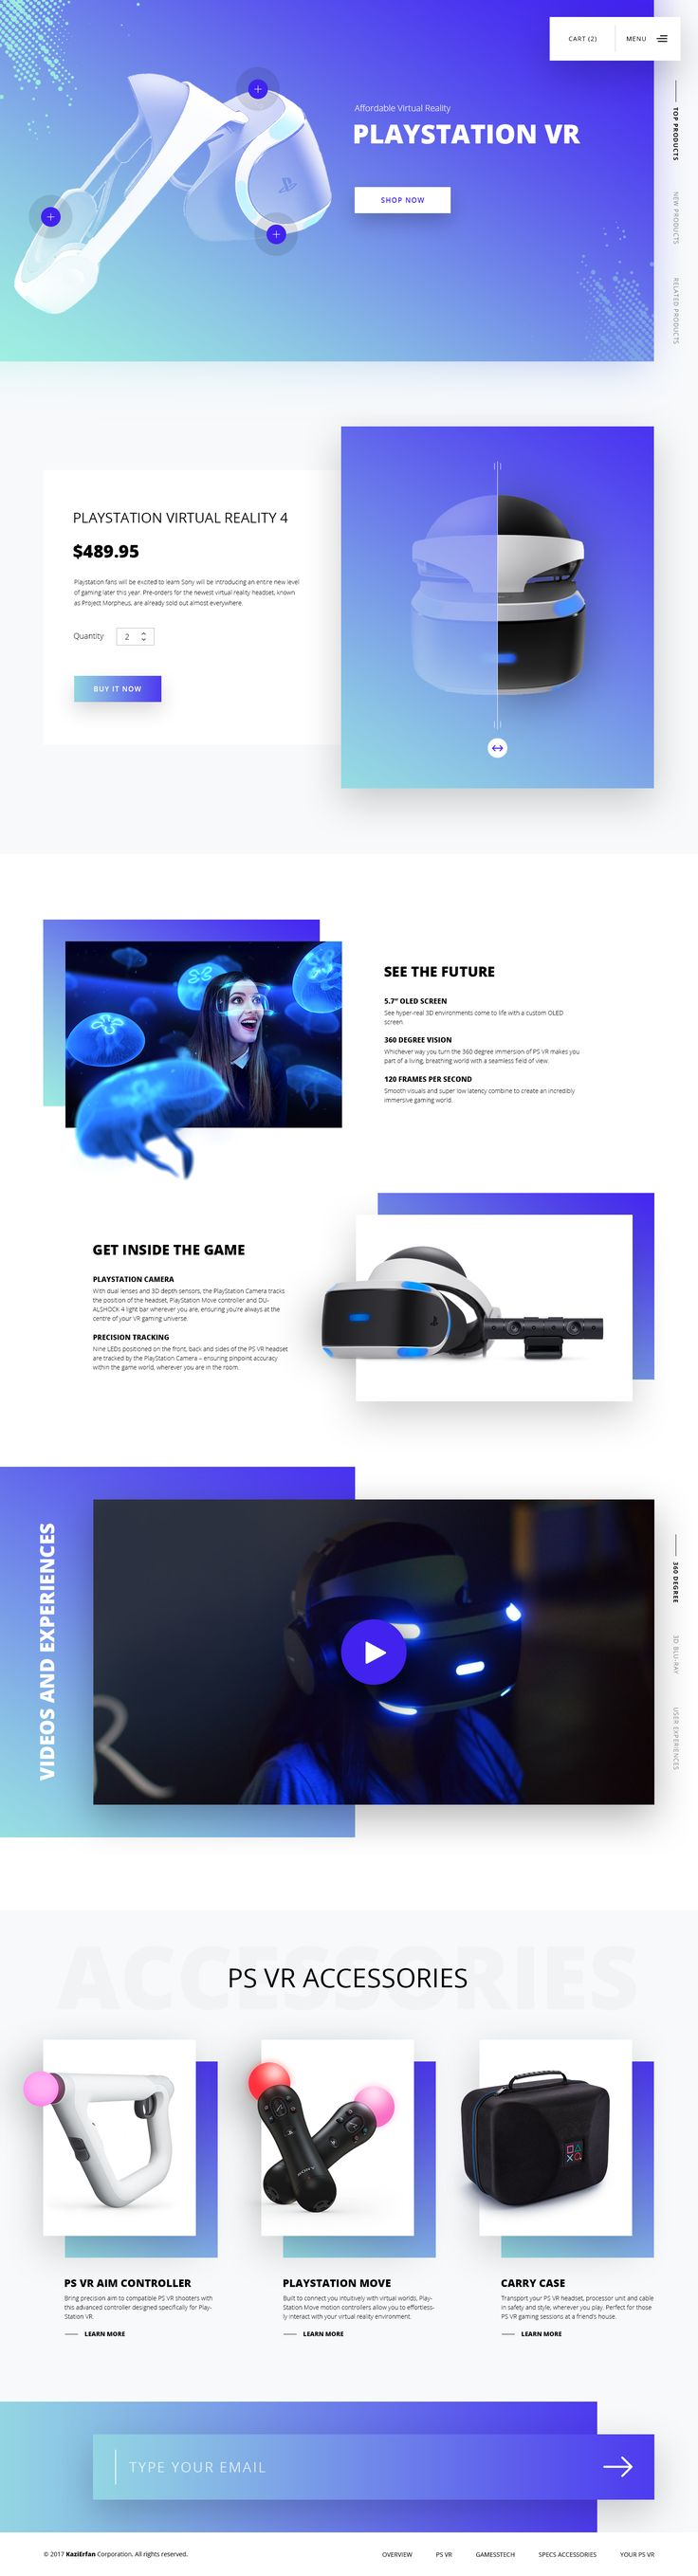 PlayStation Virtual Reality Website Design on Behance